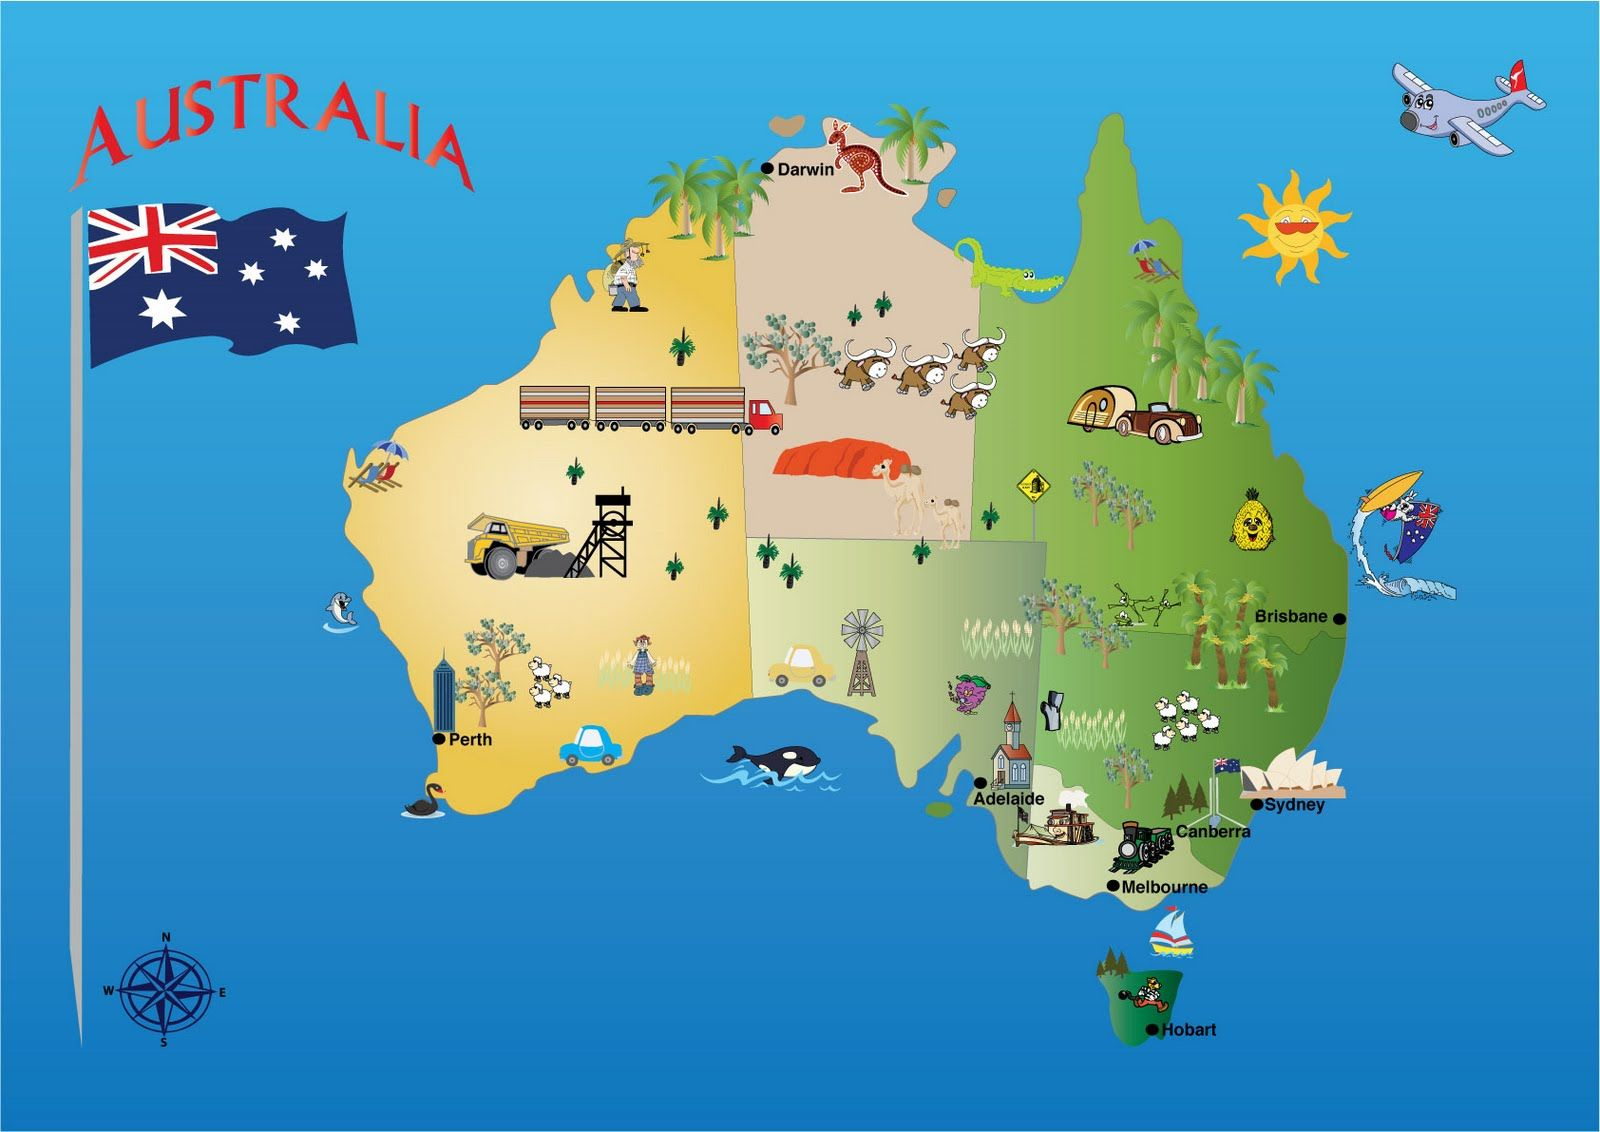 Australia Map With Flag.Australian Map Flag And Country Facts About Australia Australia